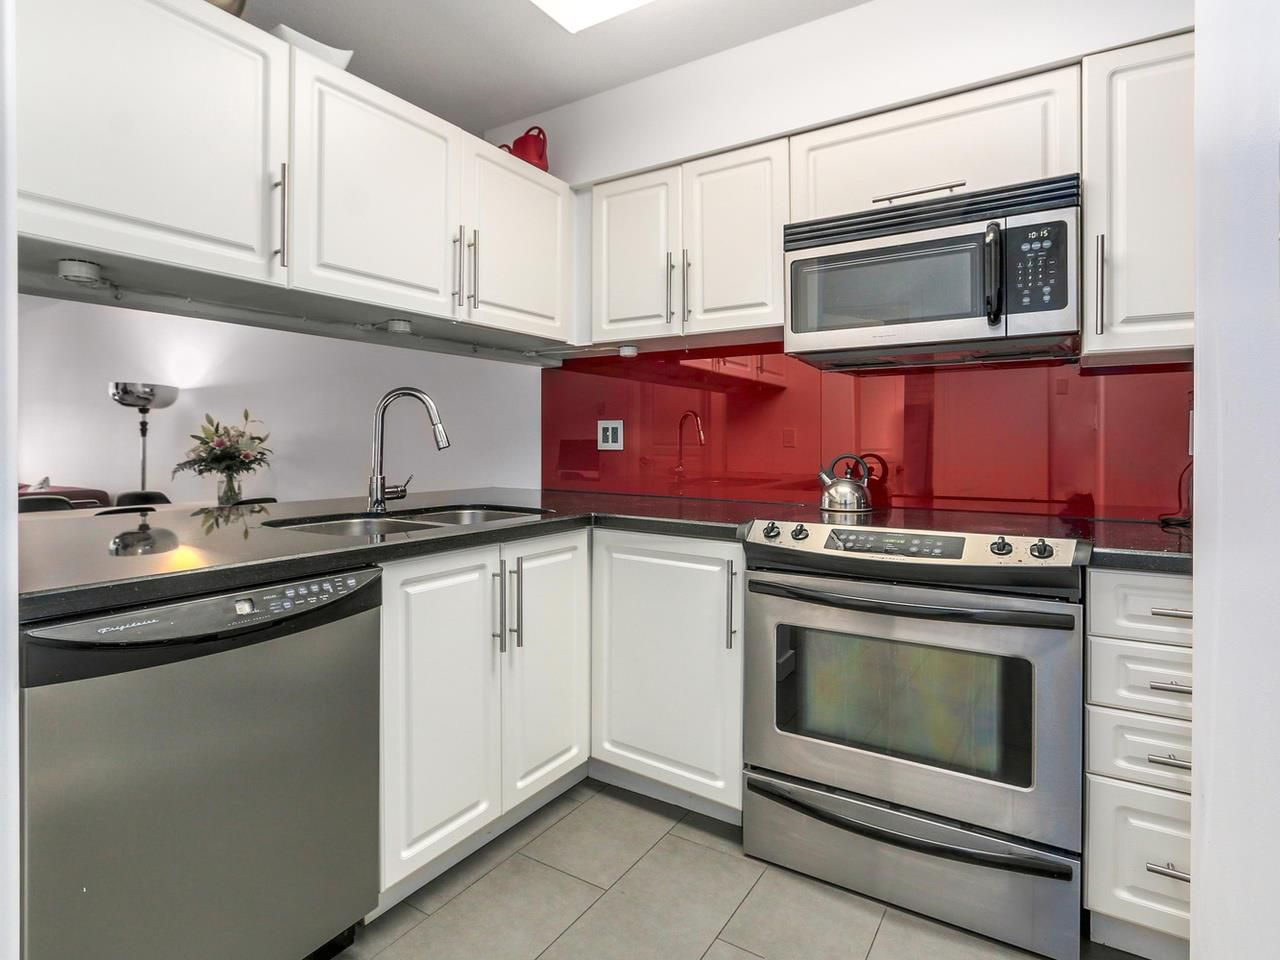 Granite Counters, SS Appliances, Updated Floor Tile